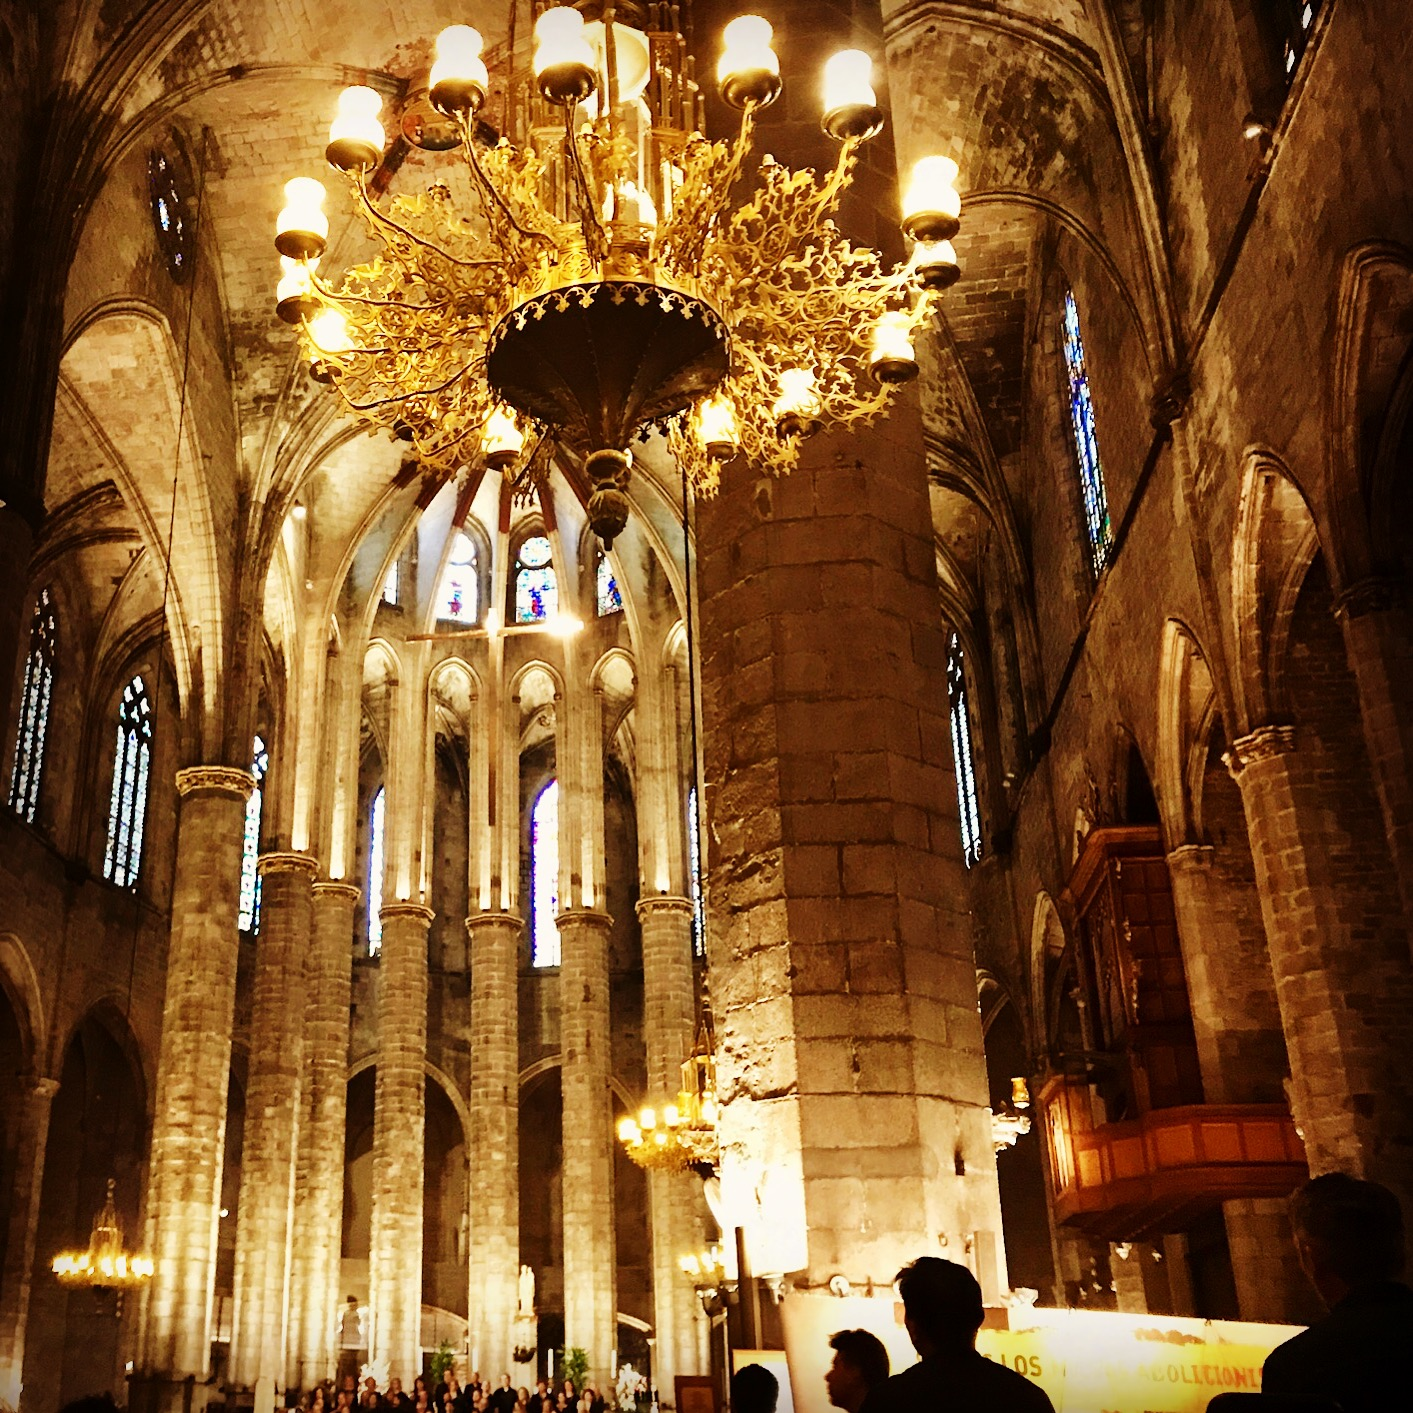 We listened to a free concert at this graceful church in Barcelona.